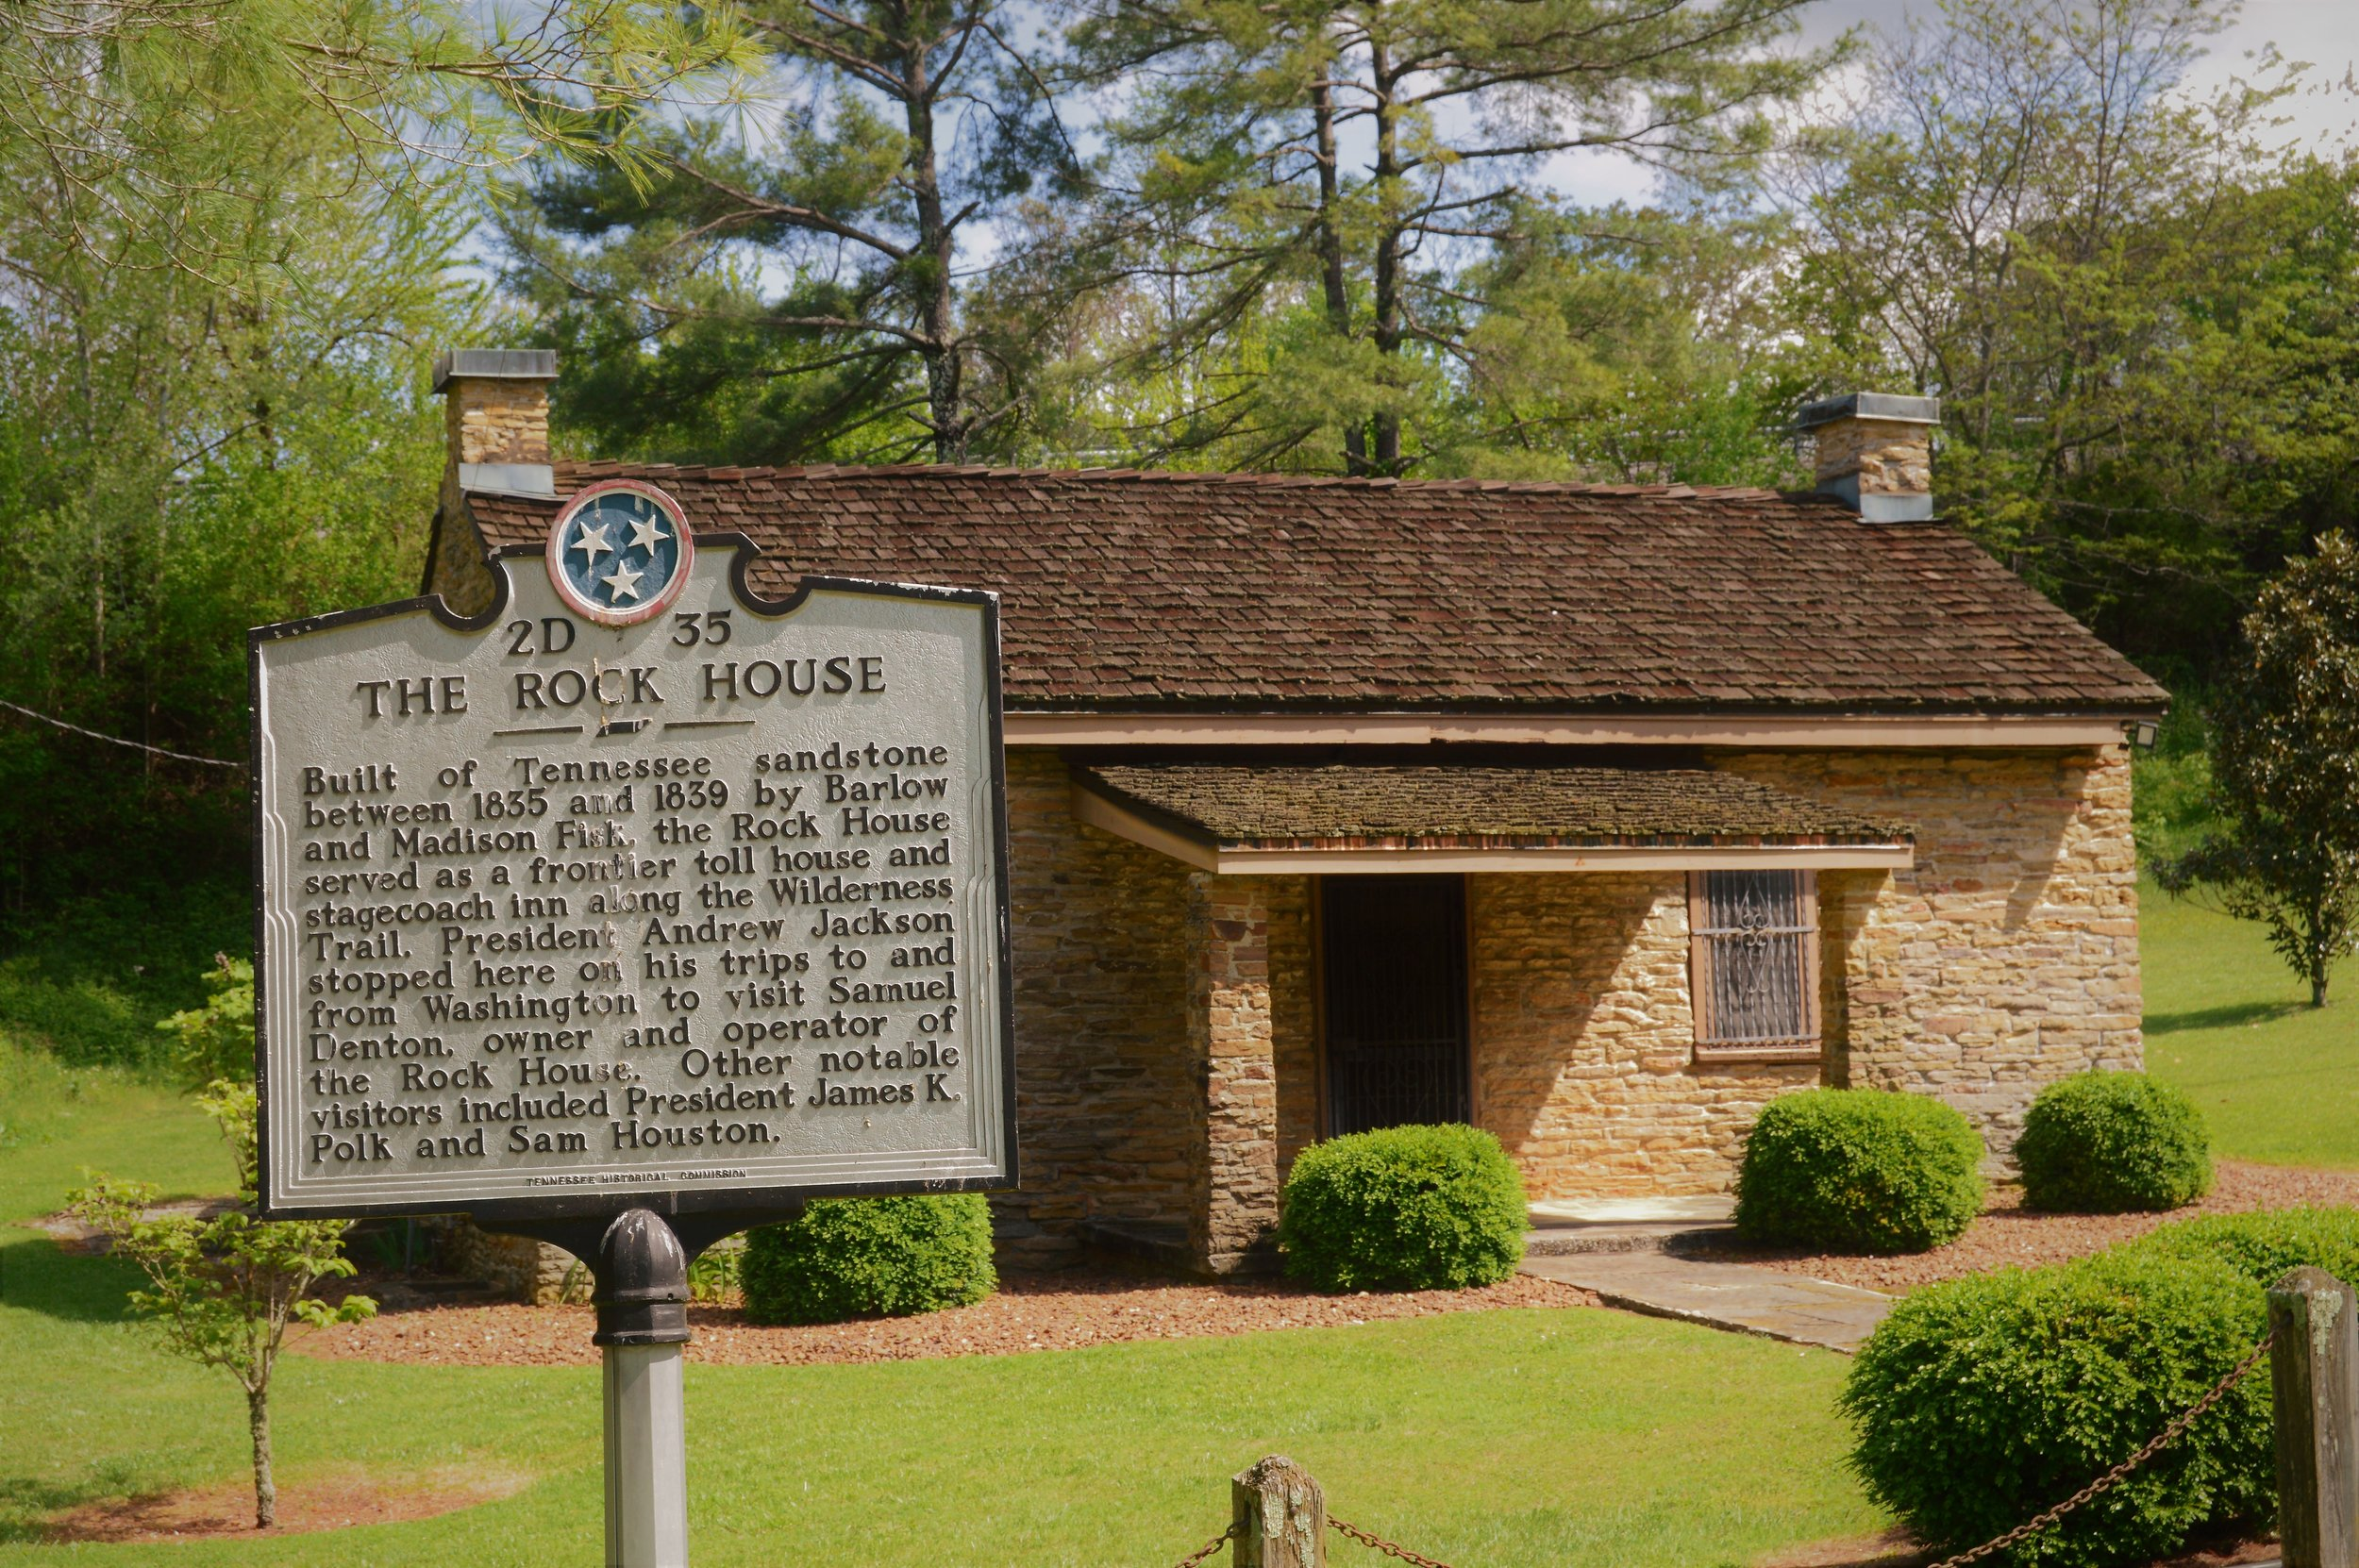 The Rock House near Sparta, Tennessee has been around for nearly 200 years.